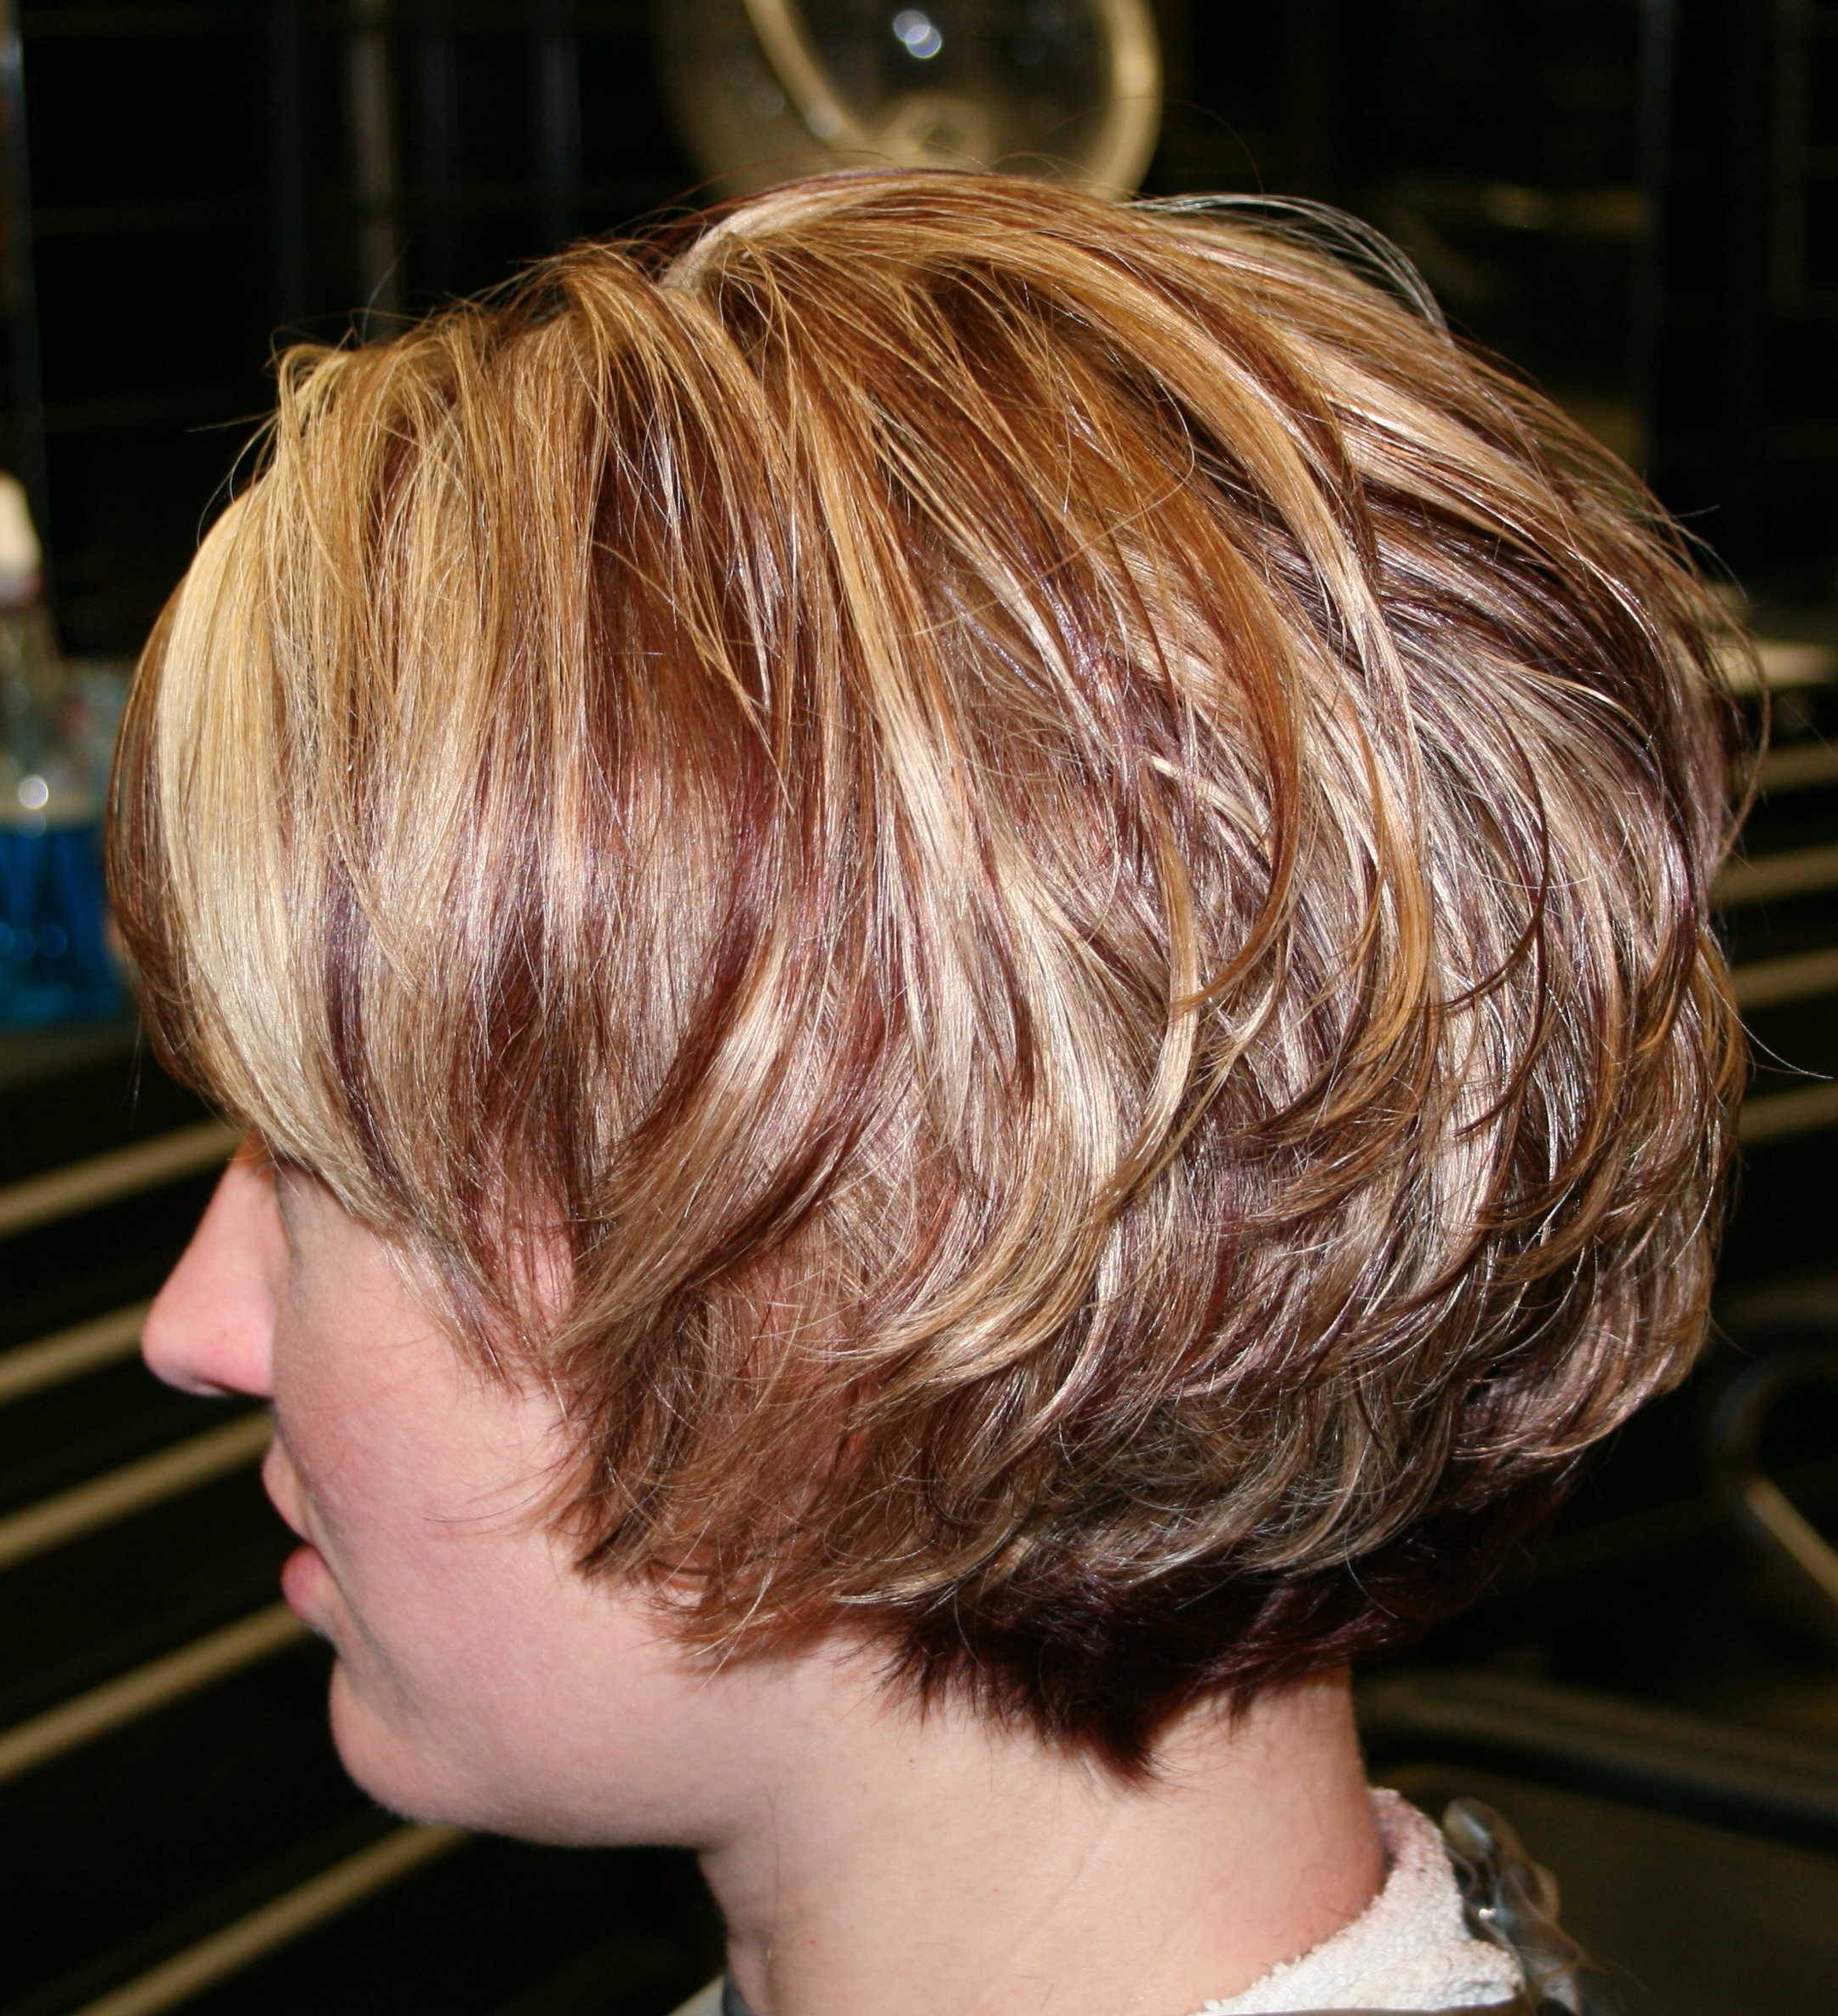 Short Layered Bob Hairstyles For Thick Hair – Hairstyle For Women & Man Inside Layered Tapered Pixie Hairstyles For Thick Hair (View 18 of 20)